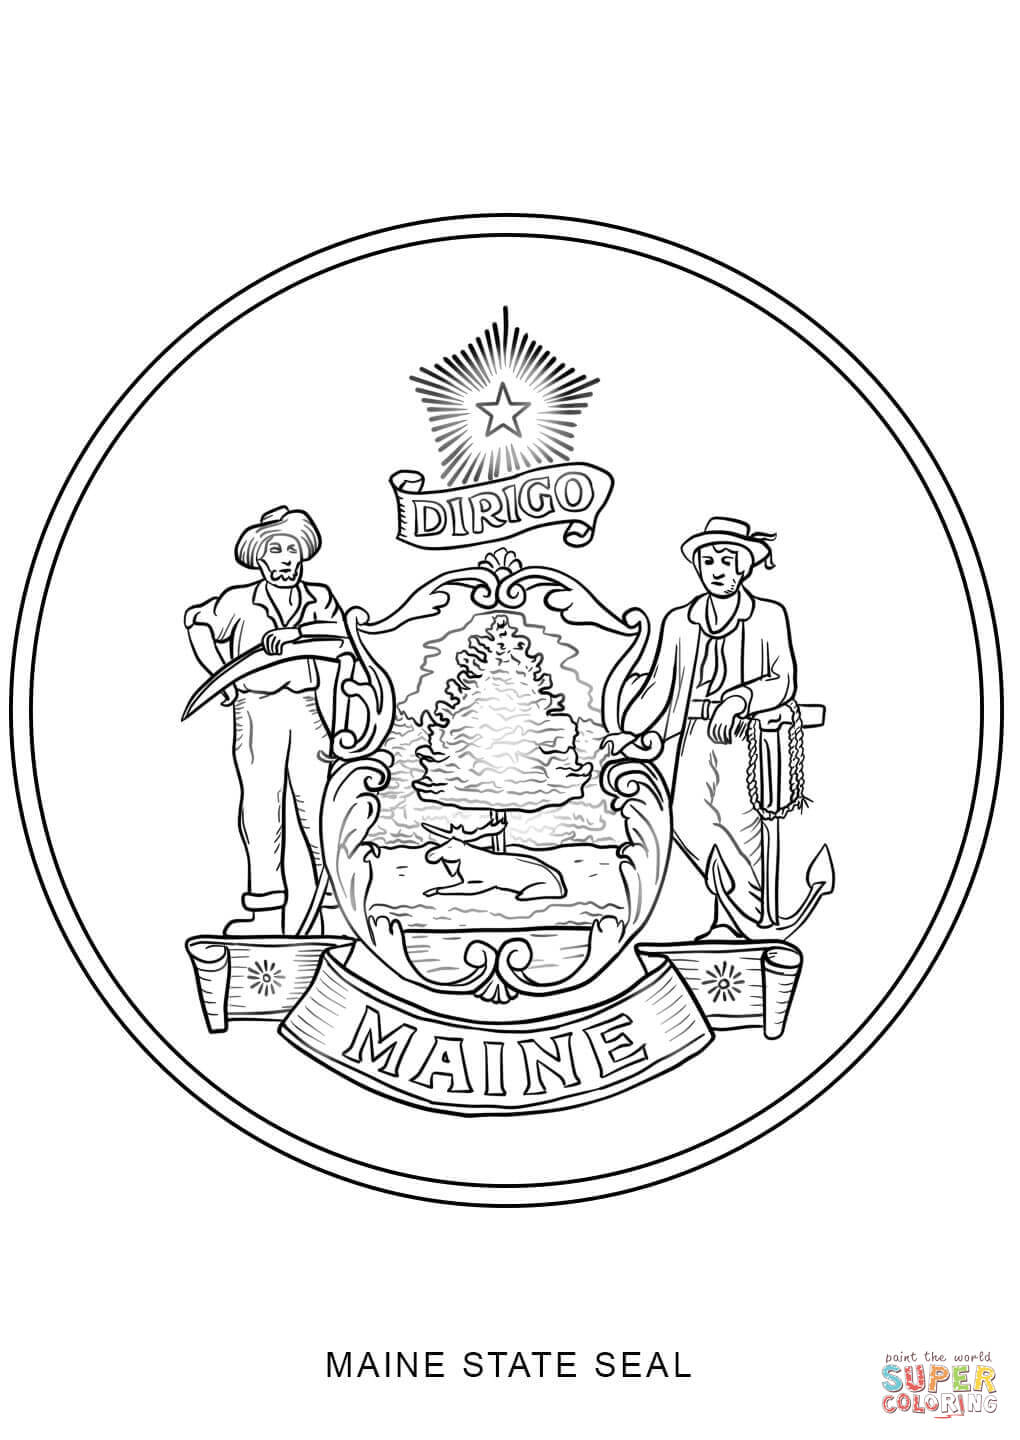 maine state flag coloring page lovely maine state seal coloring page top free printable maine flag state page coloring